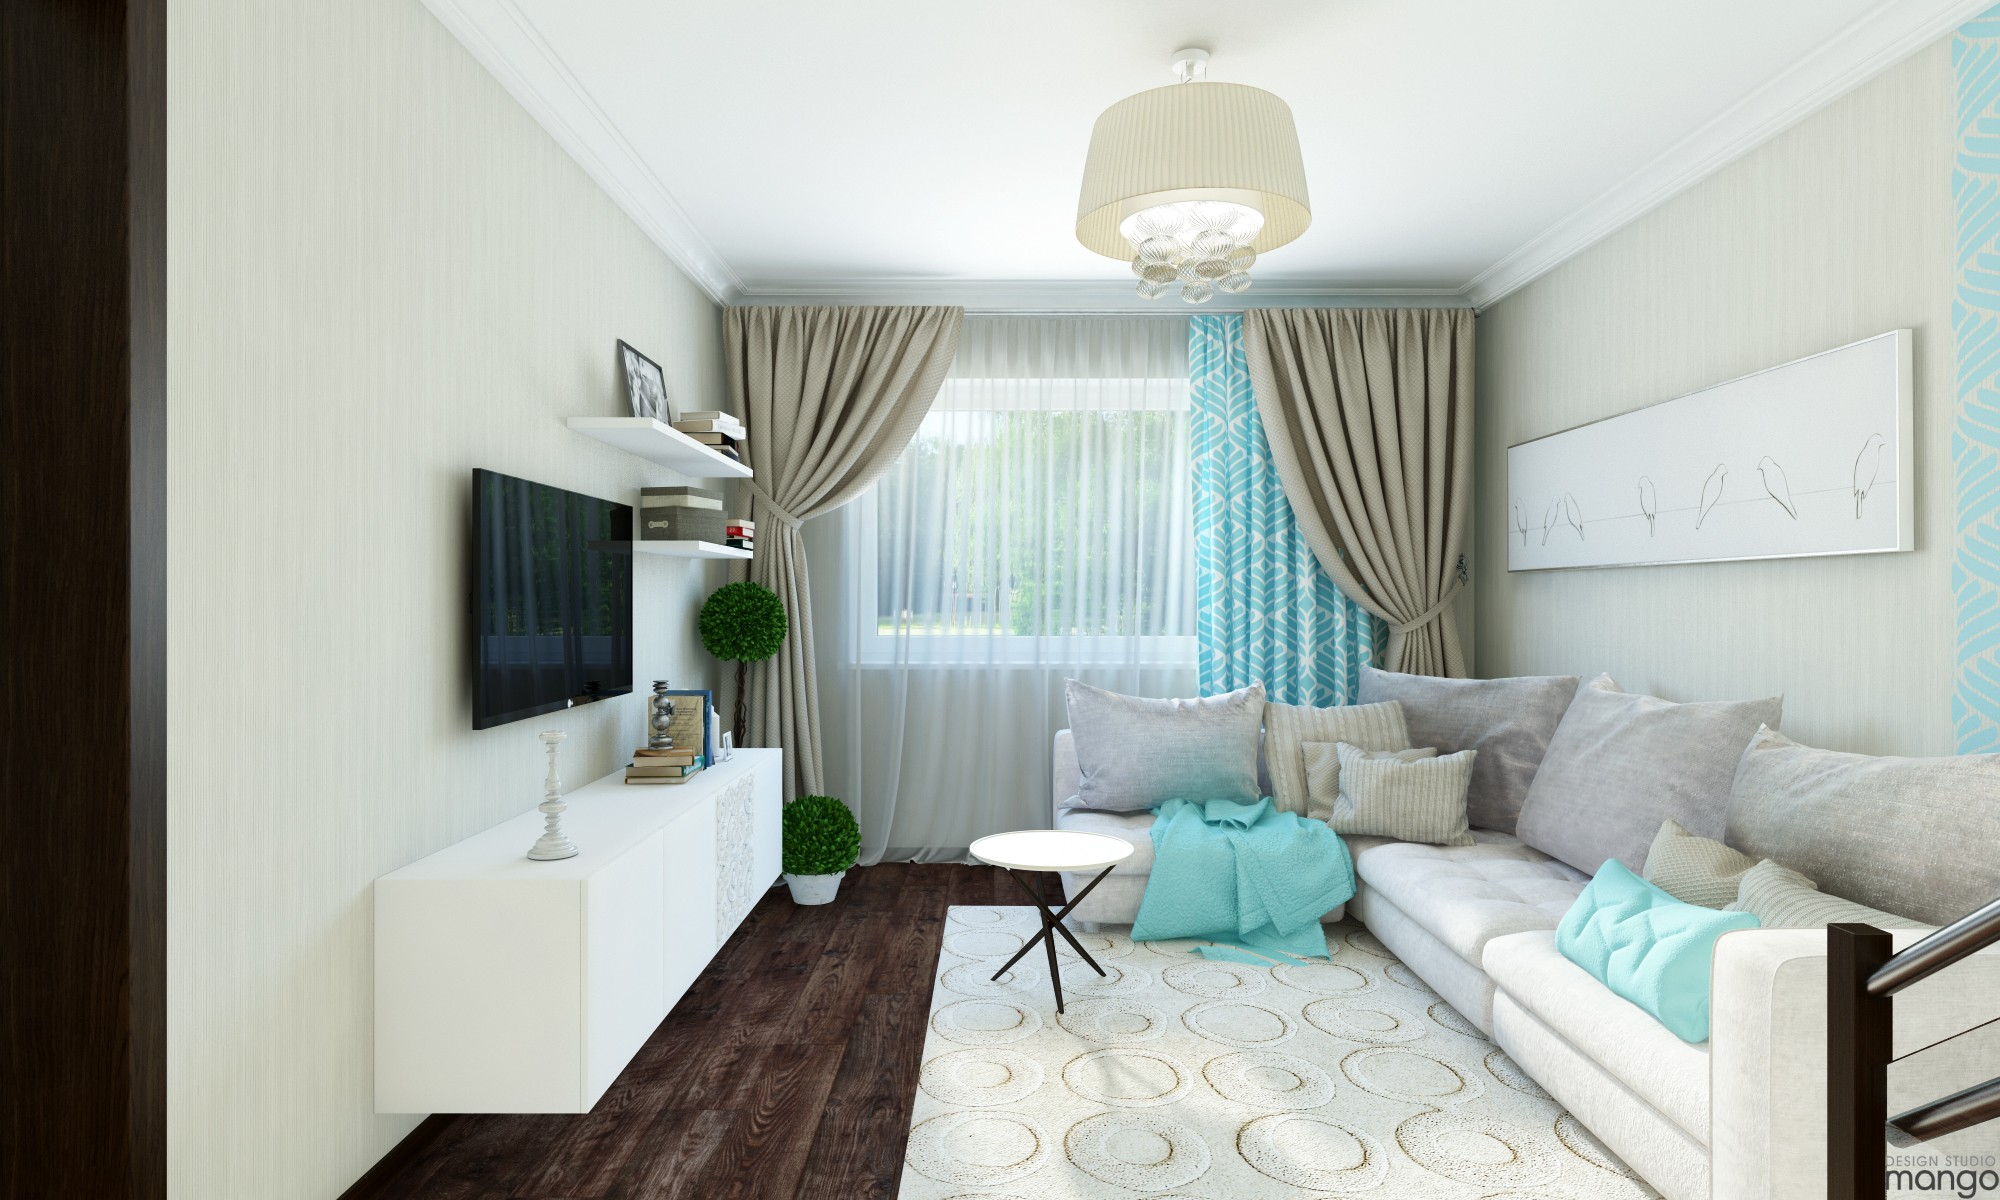 Modern Small Living Room Design Inspiration To Arrange Small Living Room Designs Which Combine